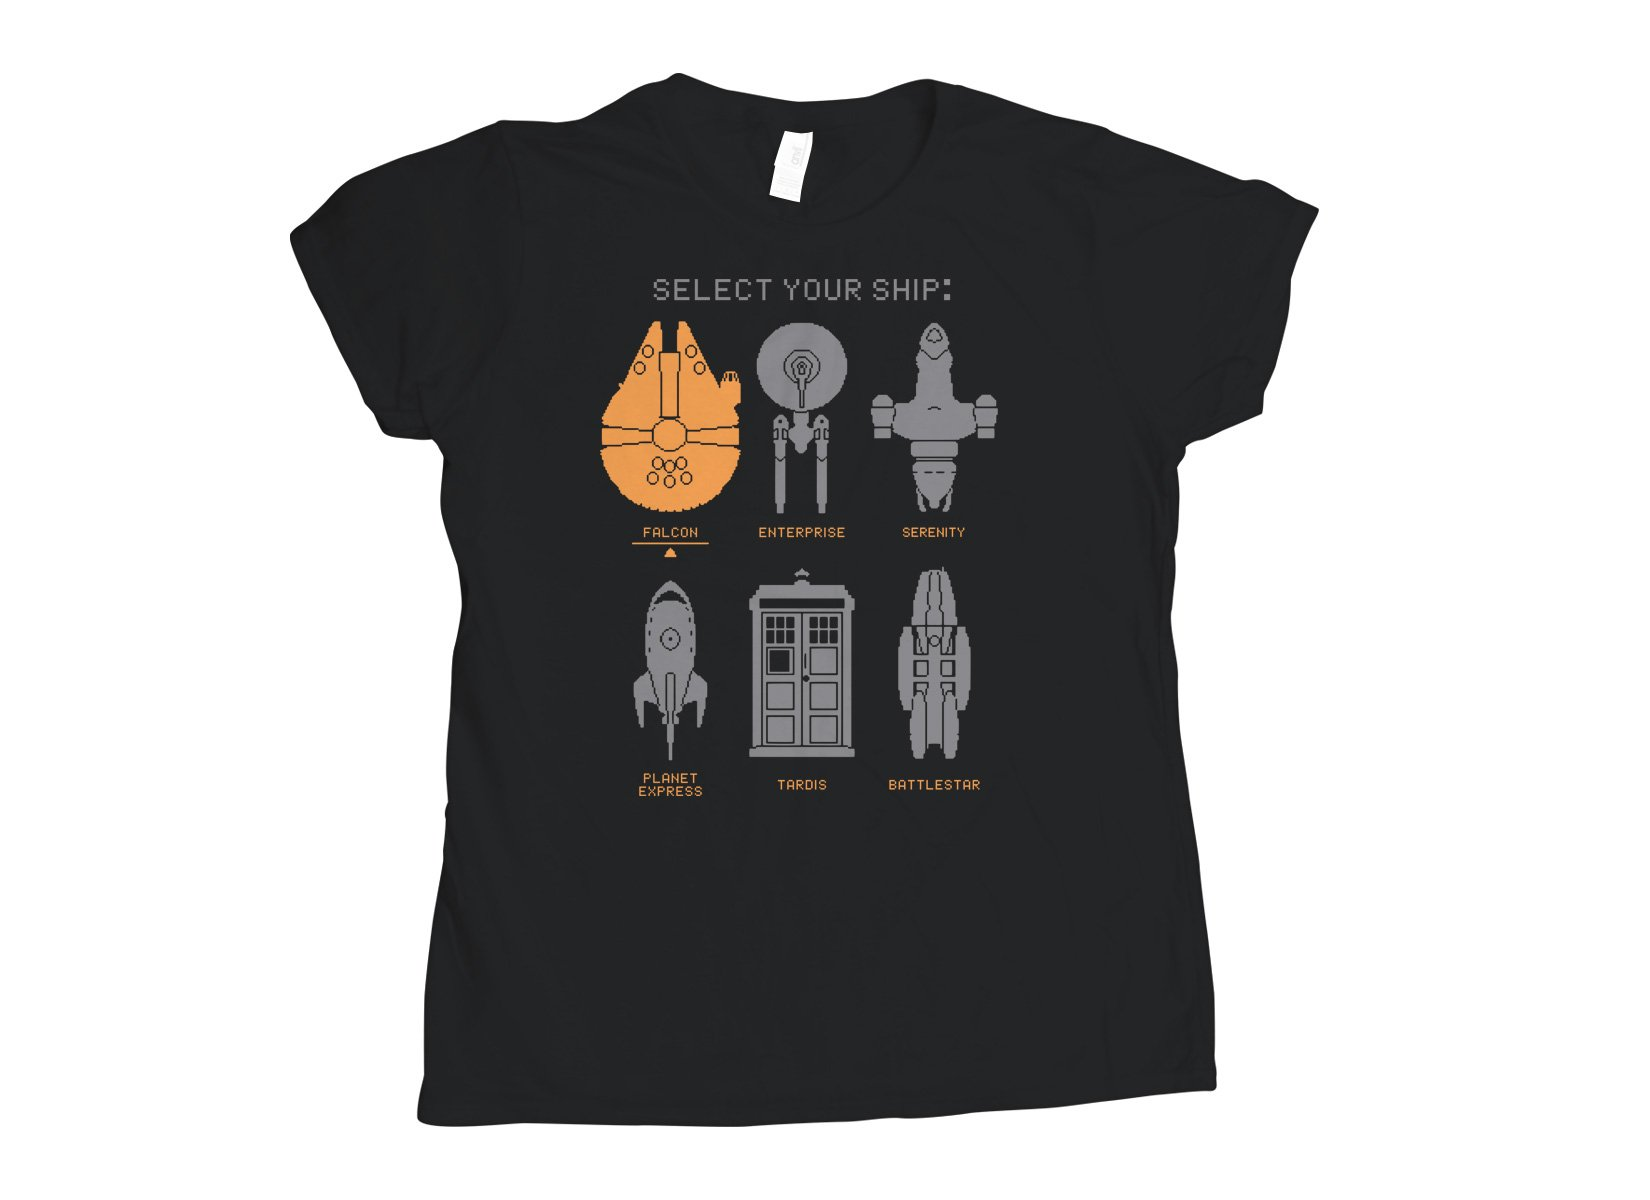 Select Your Ship on Womens T-Shirt